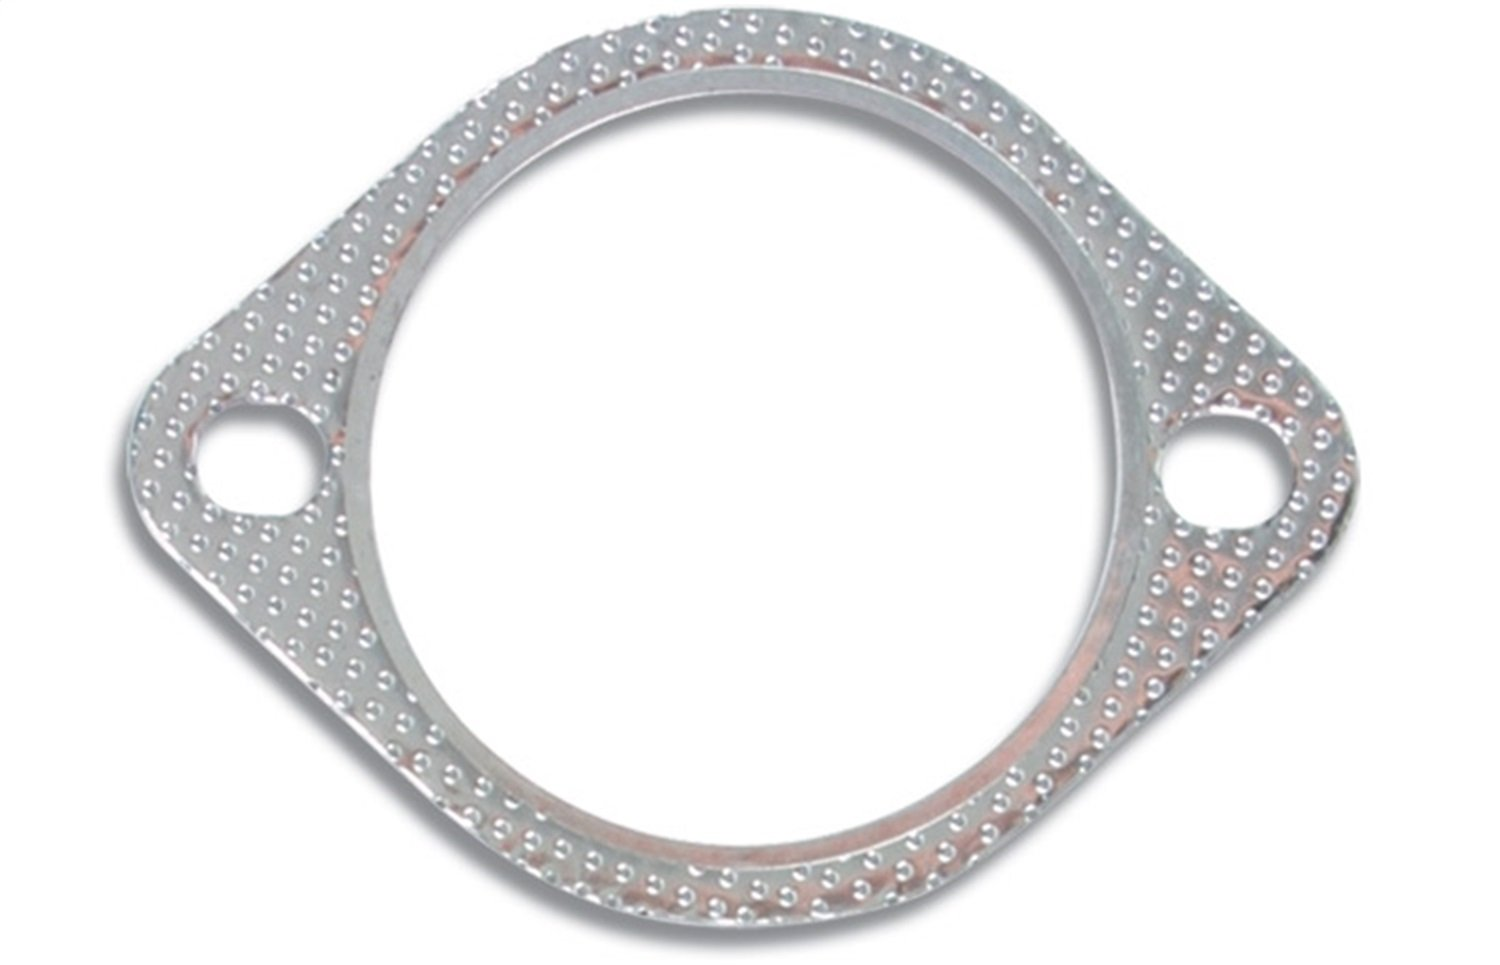 Vibrant 1458 2-Bolt High Temperature Exhaust Gasket KEYU1 VIB1458